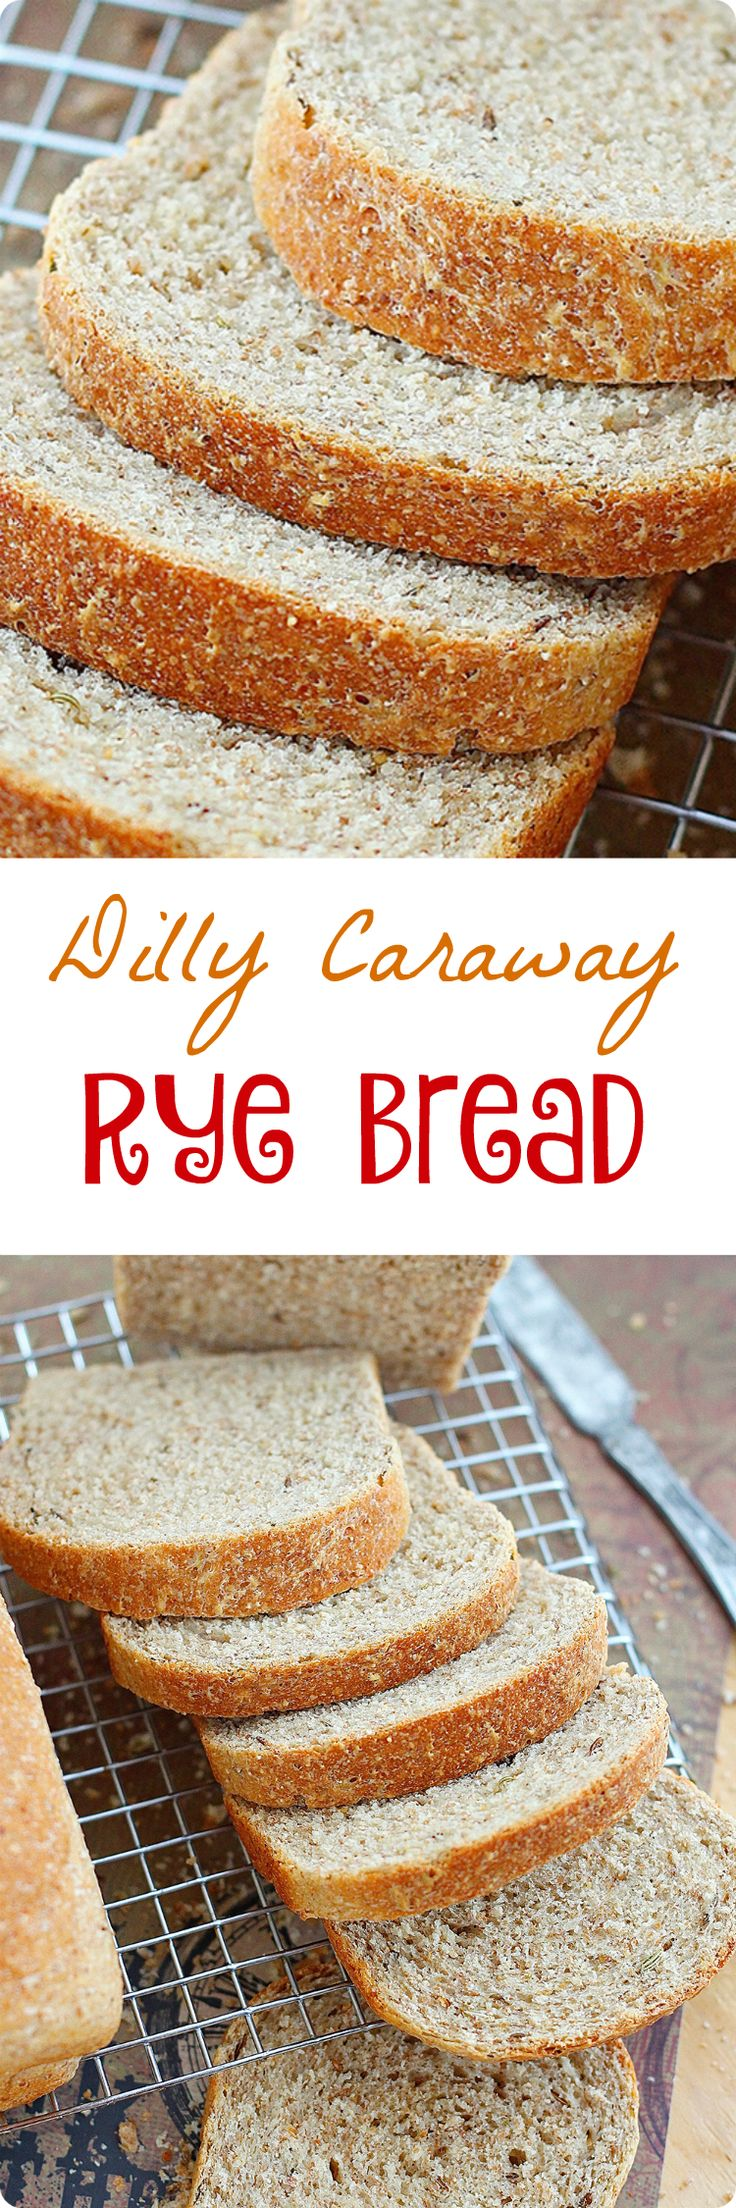 Light and airy, with a soft crust and filled with caraway and dill seeds, this egg free bread is just what you need to make delicious deli sandwiches. Find recipe at redstaryeast.com.